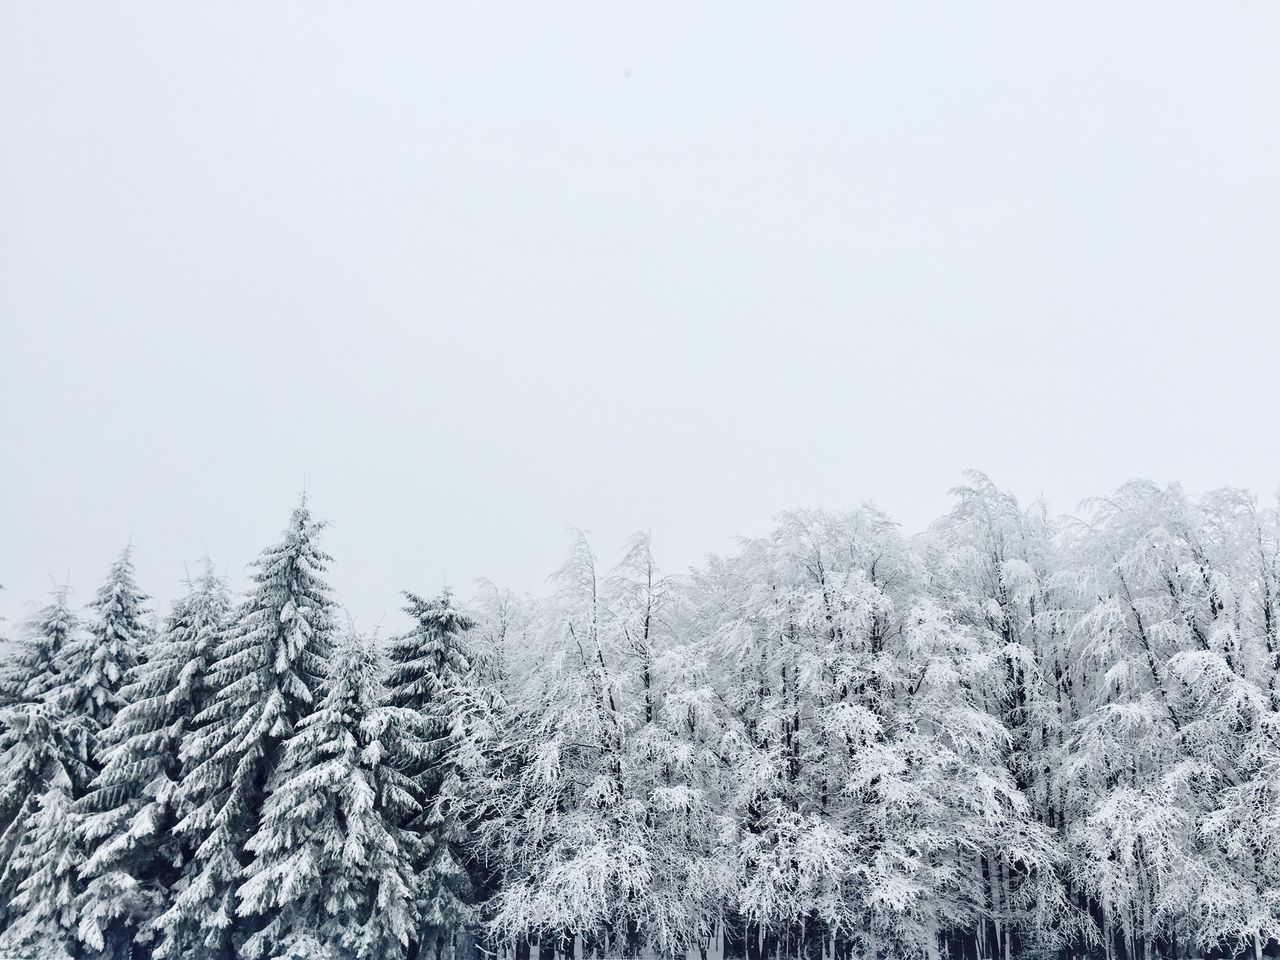 Minimalistic landscape of trees covered in snow Winter Snow Cold Temperature Nature Copy Space Tree Weather Beauty In Nature Tranquil Scene Scenics Tranquility Clear Sky Outdoors Forest Non-urban Scene Day No People Wilderness Area Snow Trees Evergreen